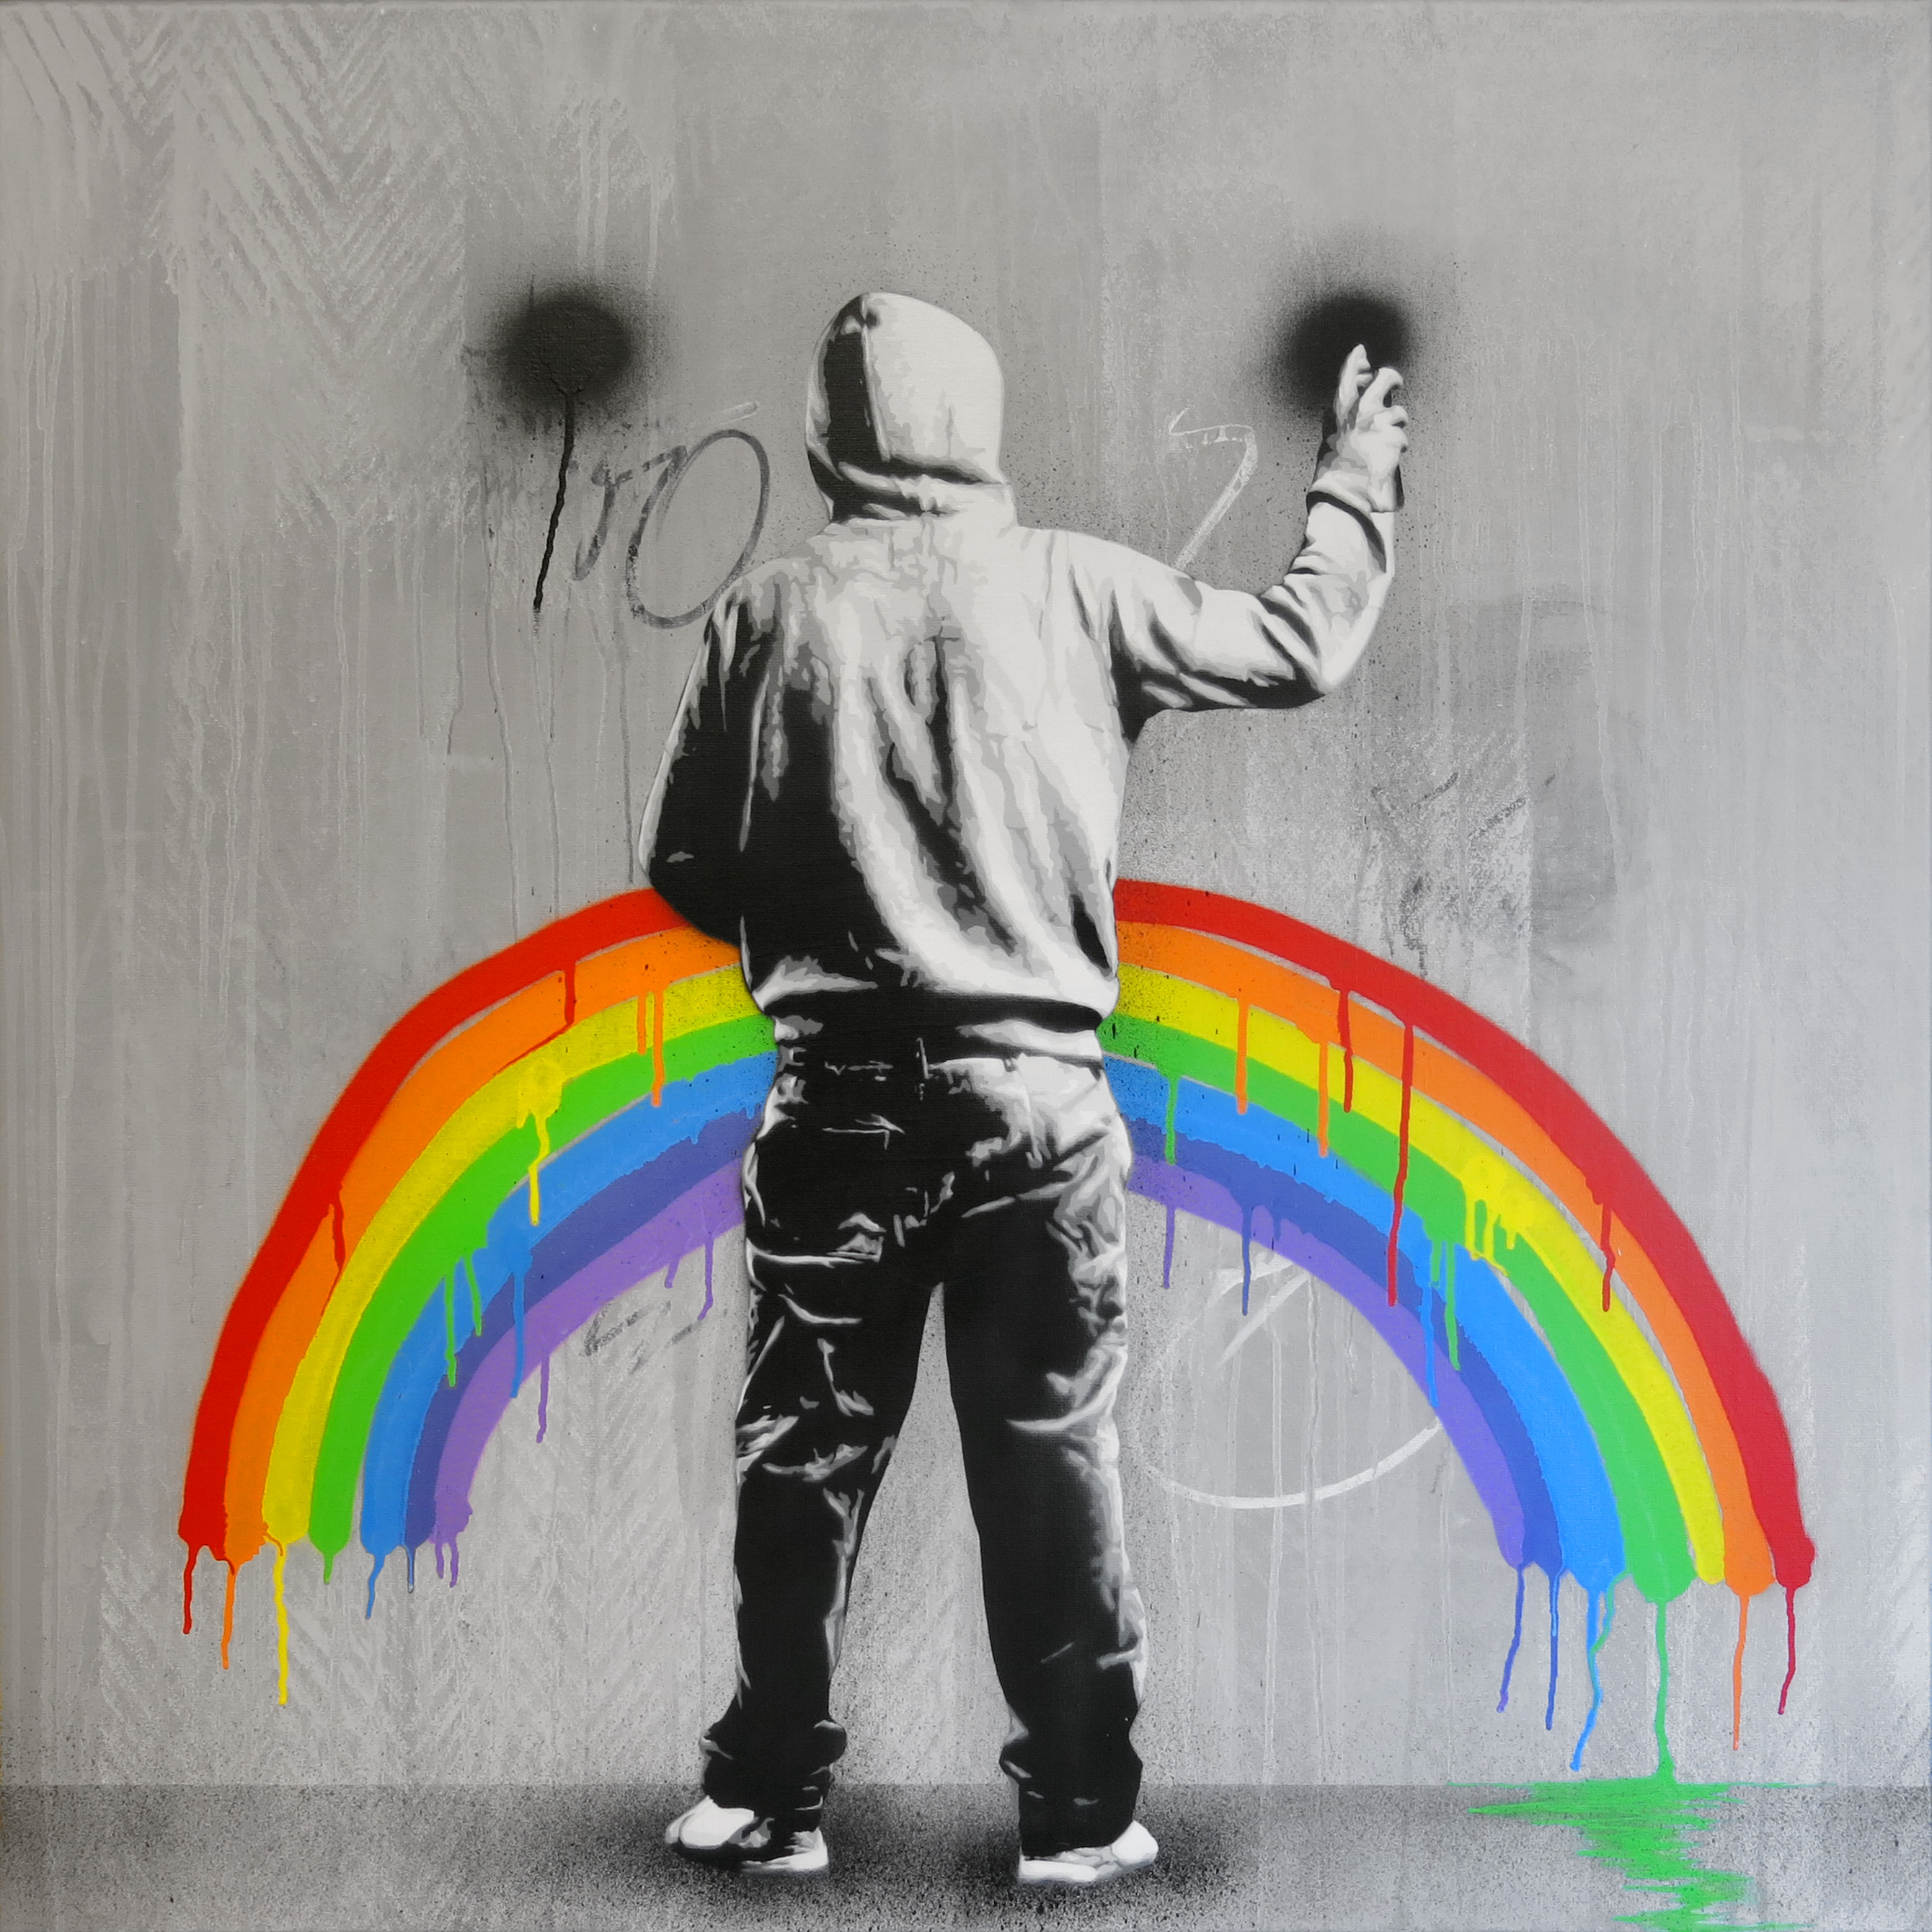 Go to the Untitled (guy with hoodie painting a rainbow) page